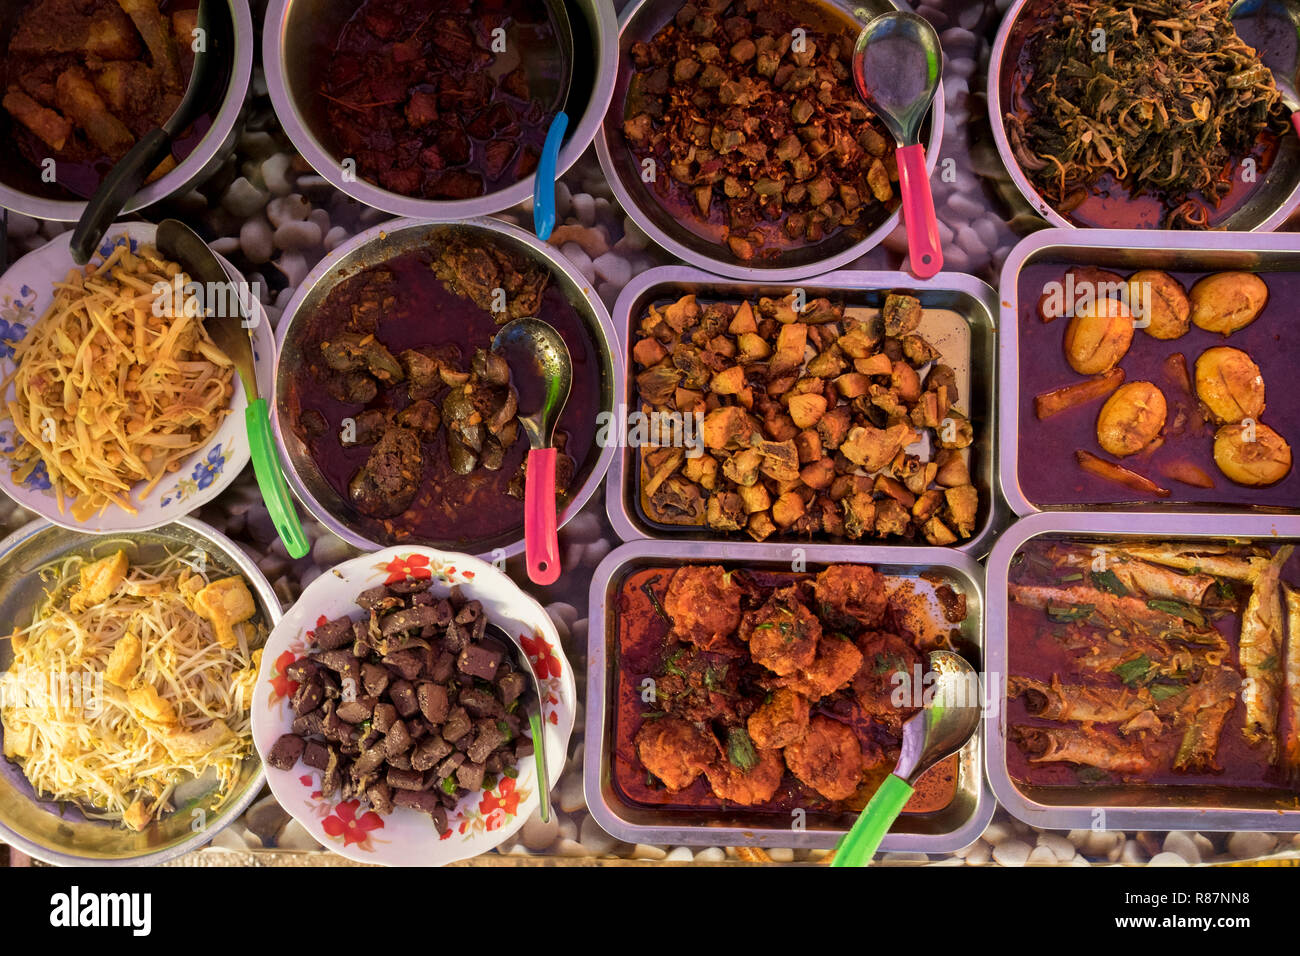 Typical Burmese food at a lunch stall in Yangon, Myanmar. - Stock Image